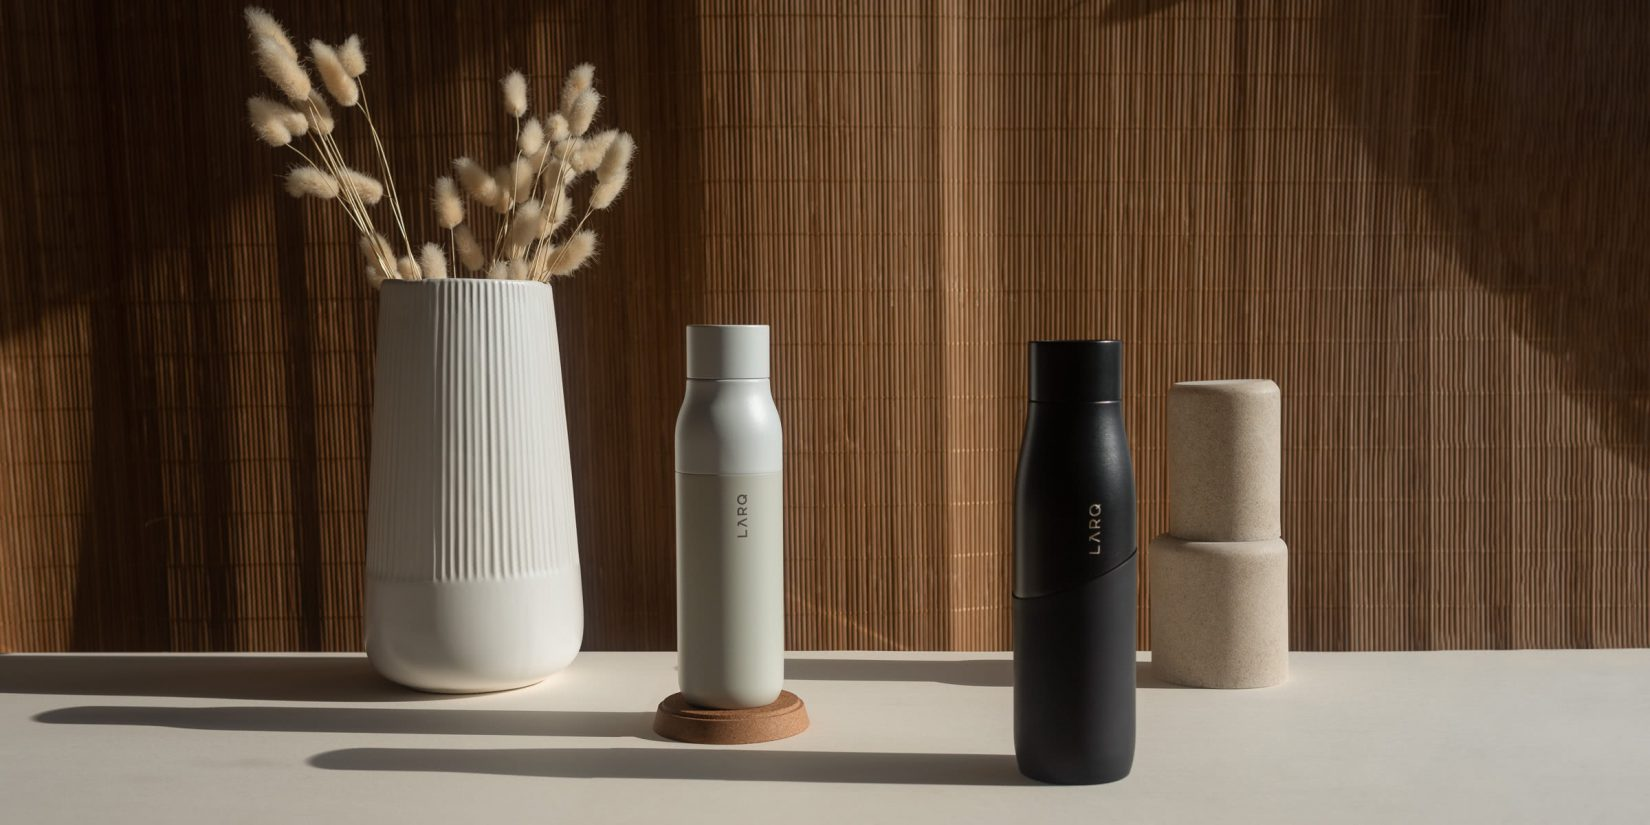 Banish Bacteria And Enjoy Effort-Free Hydration With a LARQ Bottle